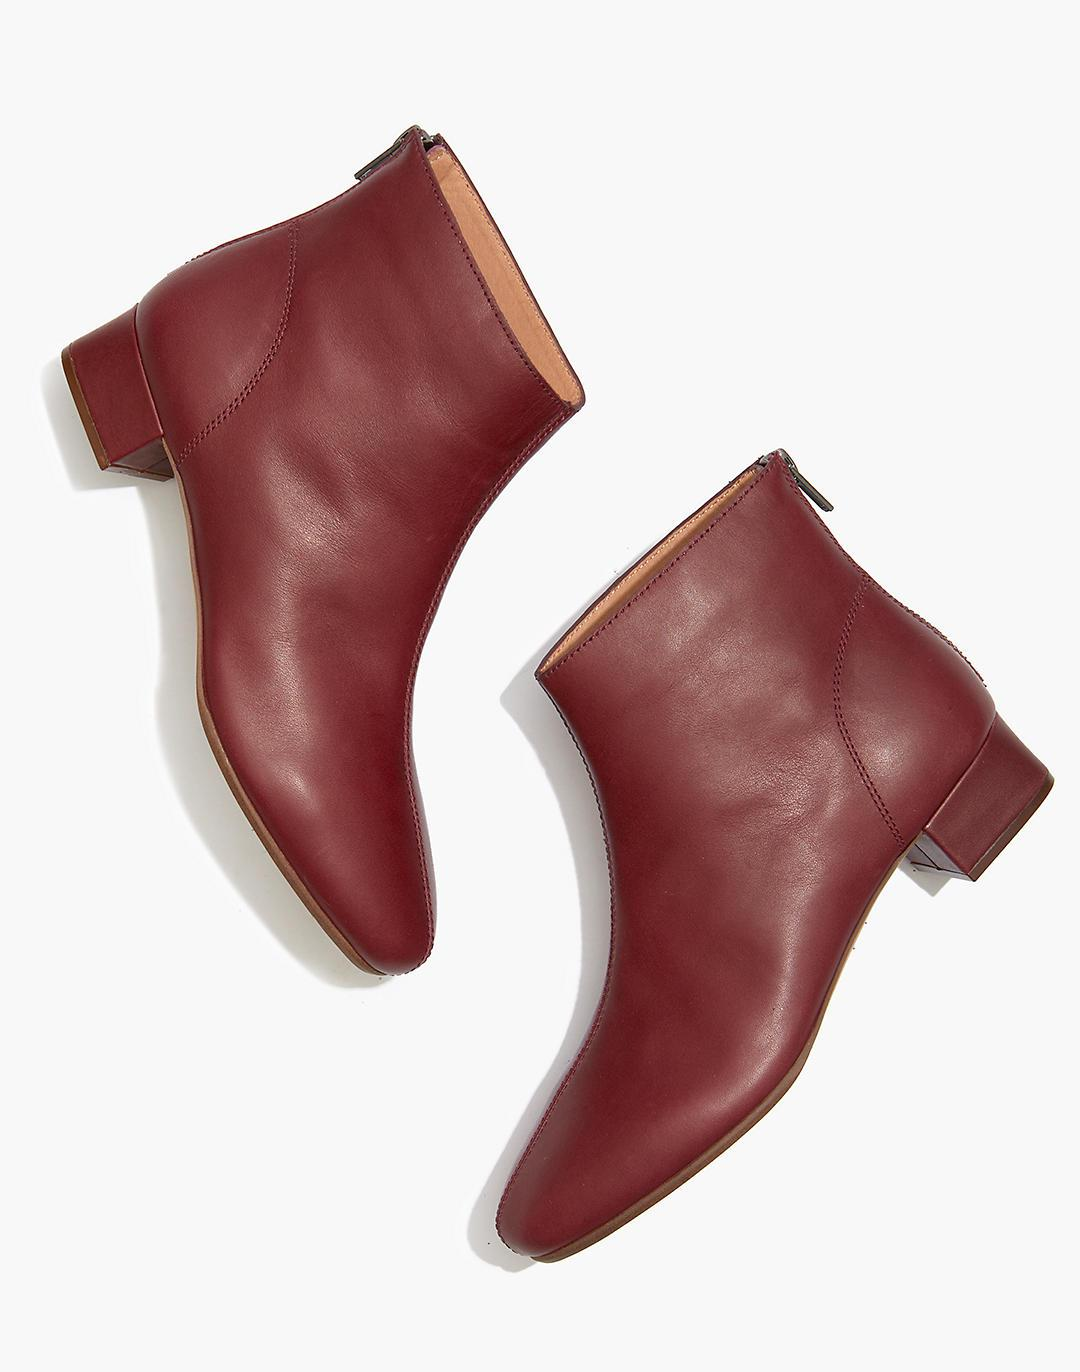 The Rena Ankle Boot in Leather